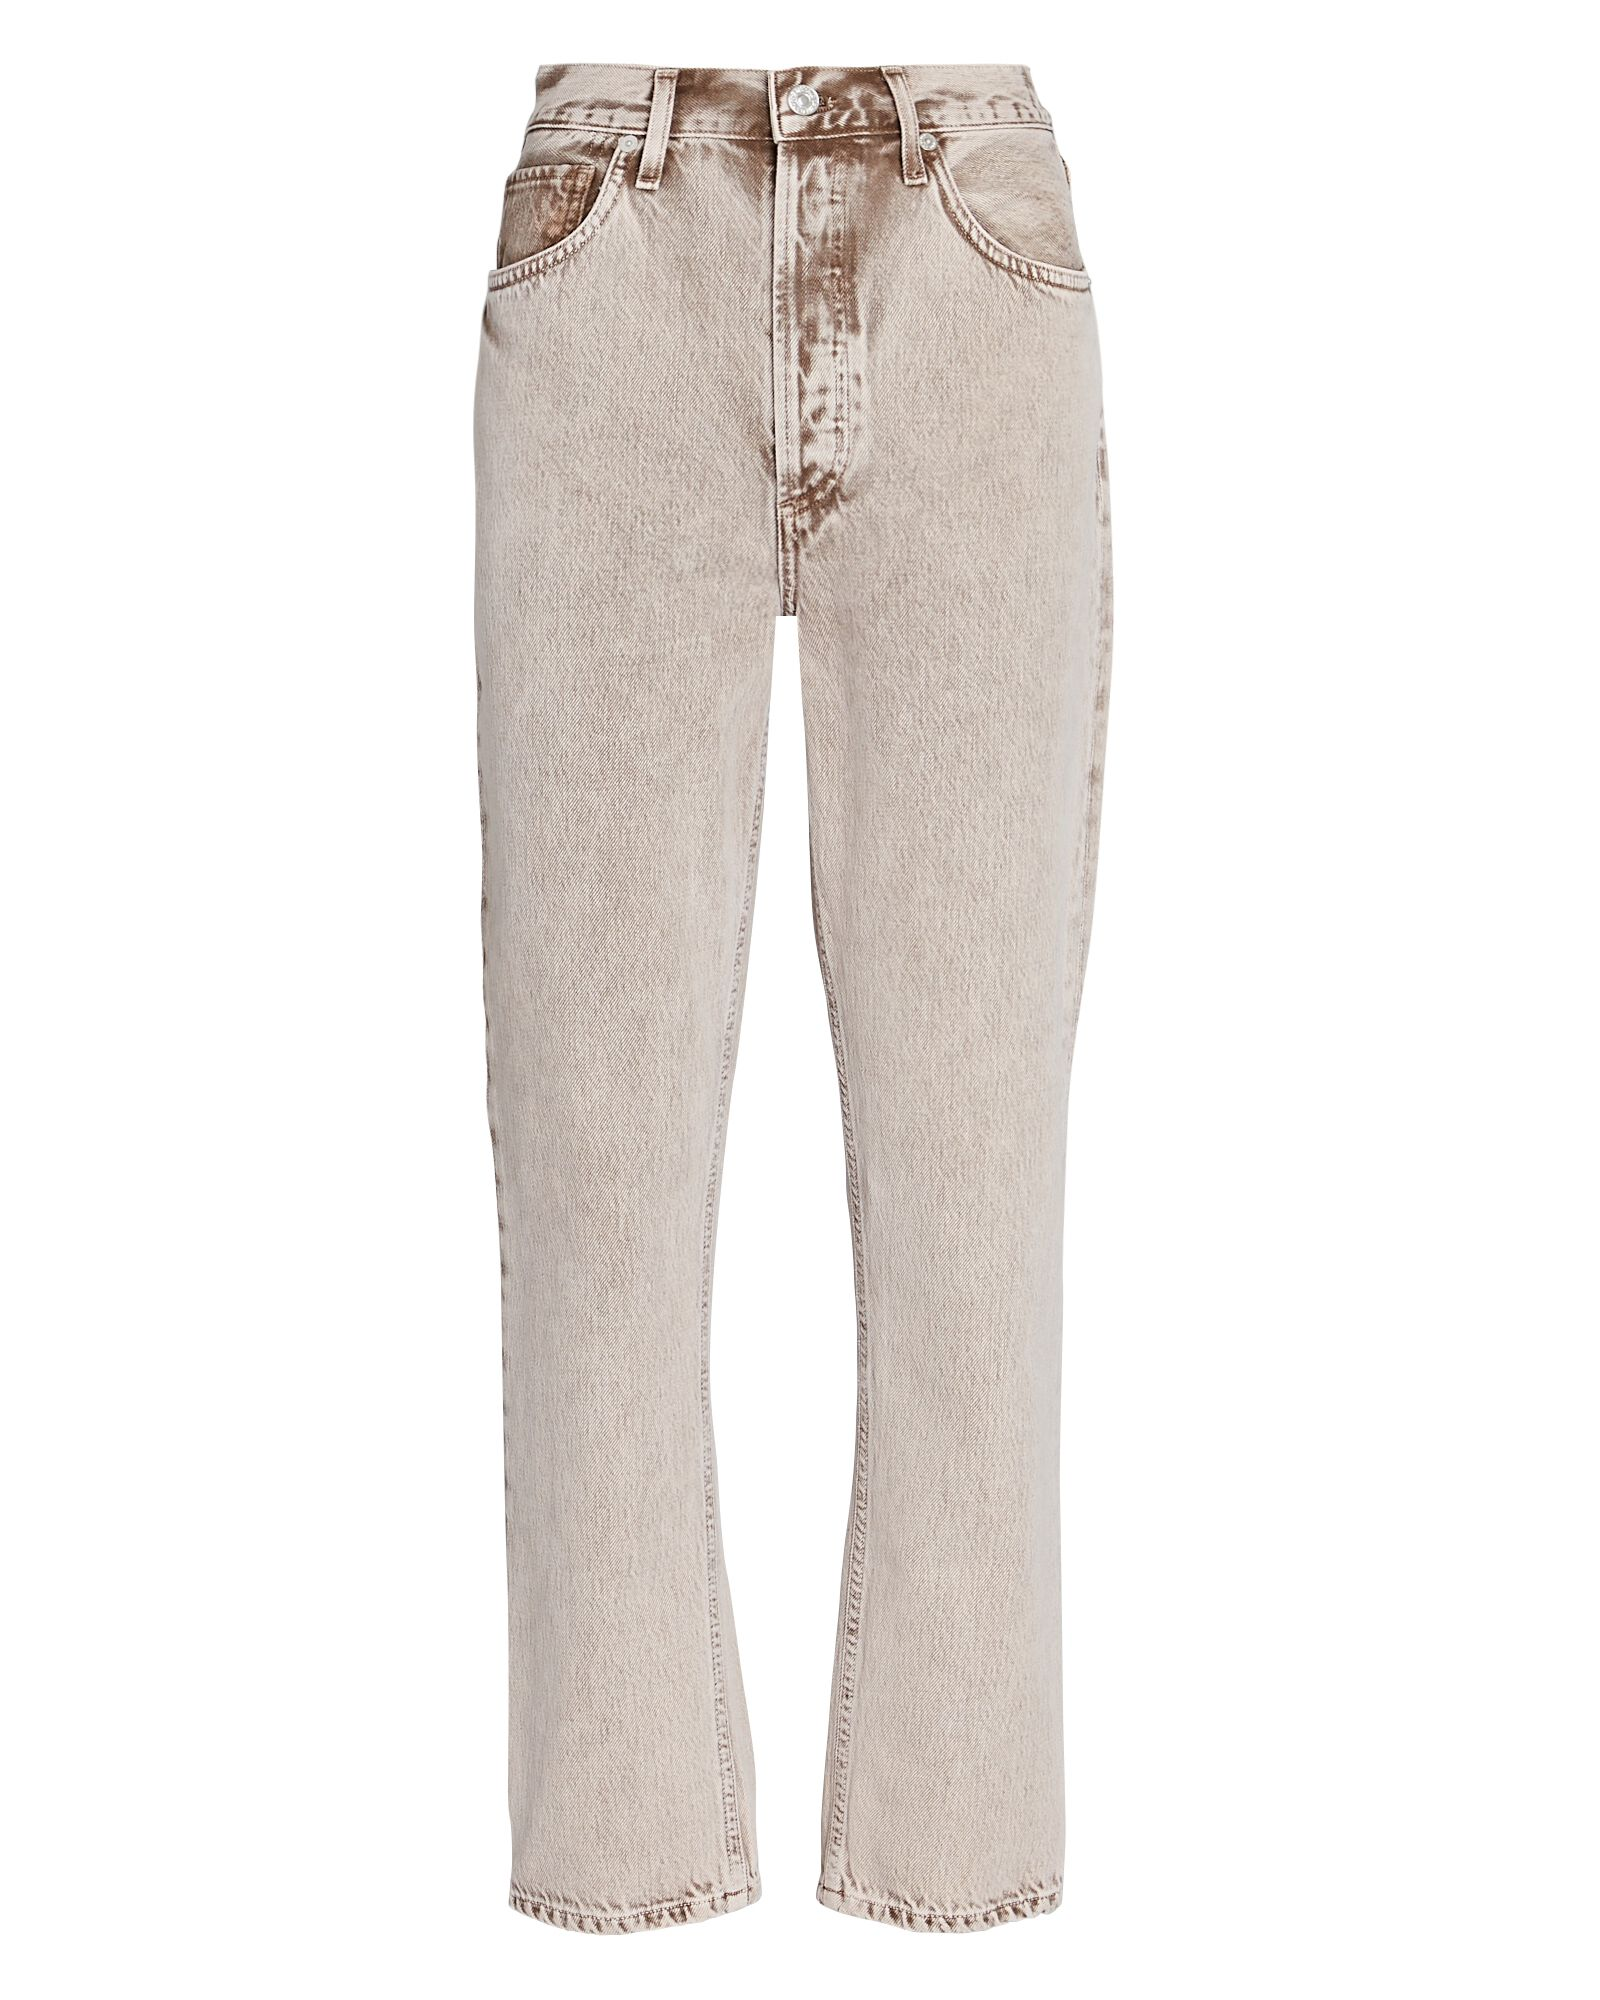 Jolene High-Rise Straight Cropped Jeans, BUFF, hi-res